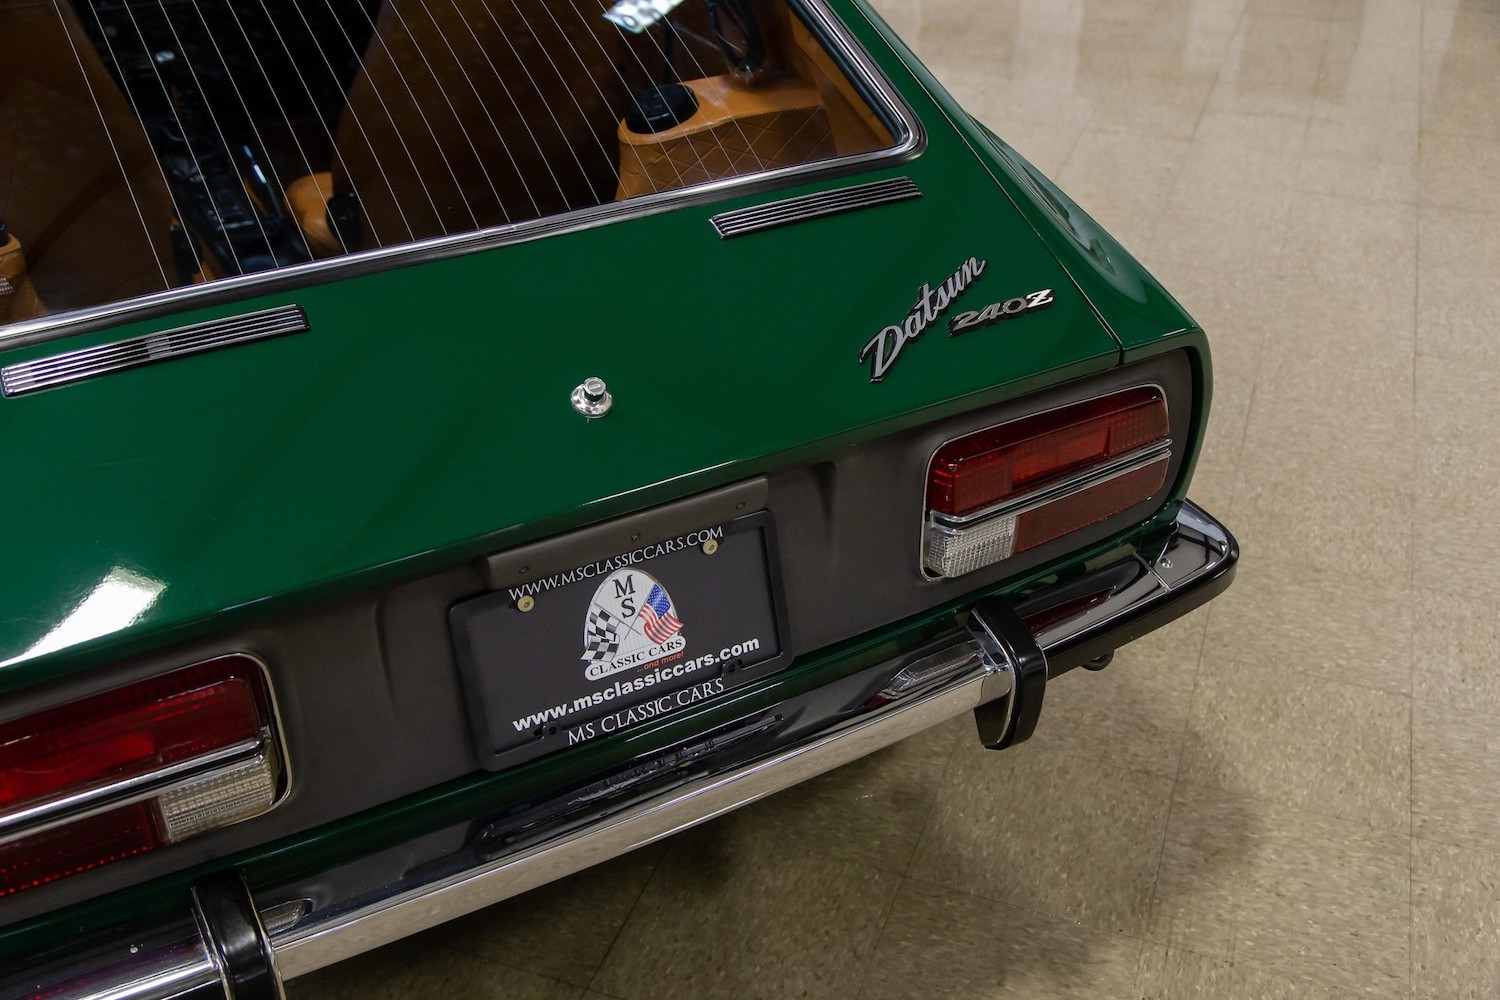 1971 Datsun 240Z Series I rear taillight